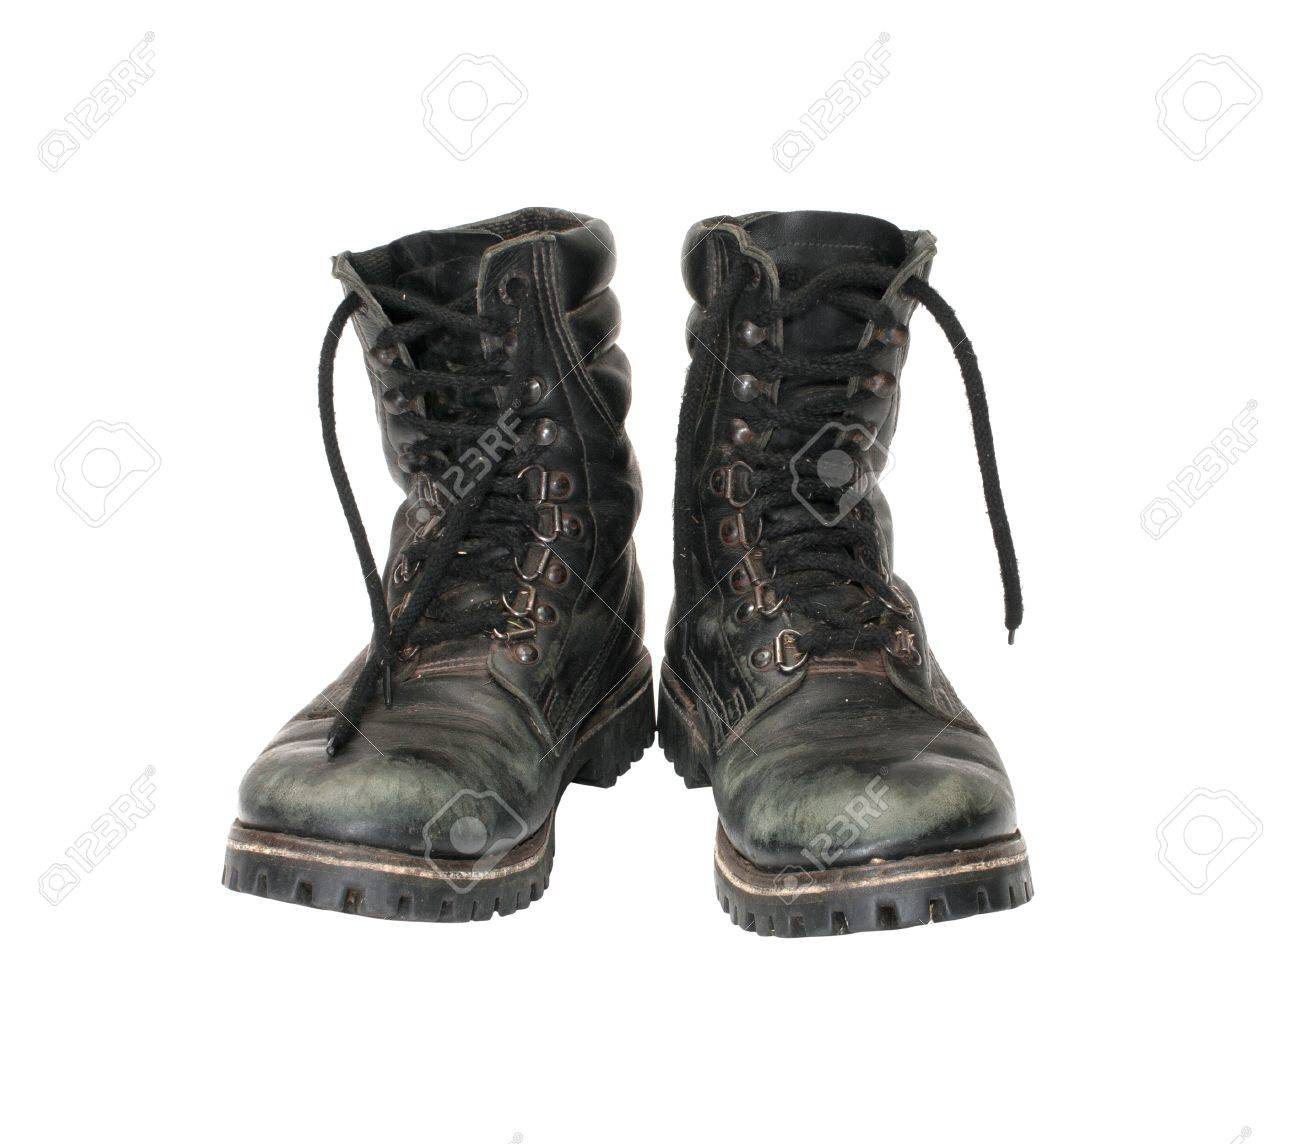 Pair worn army boots it is isolated on a white background. Stock Photo - 12439545